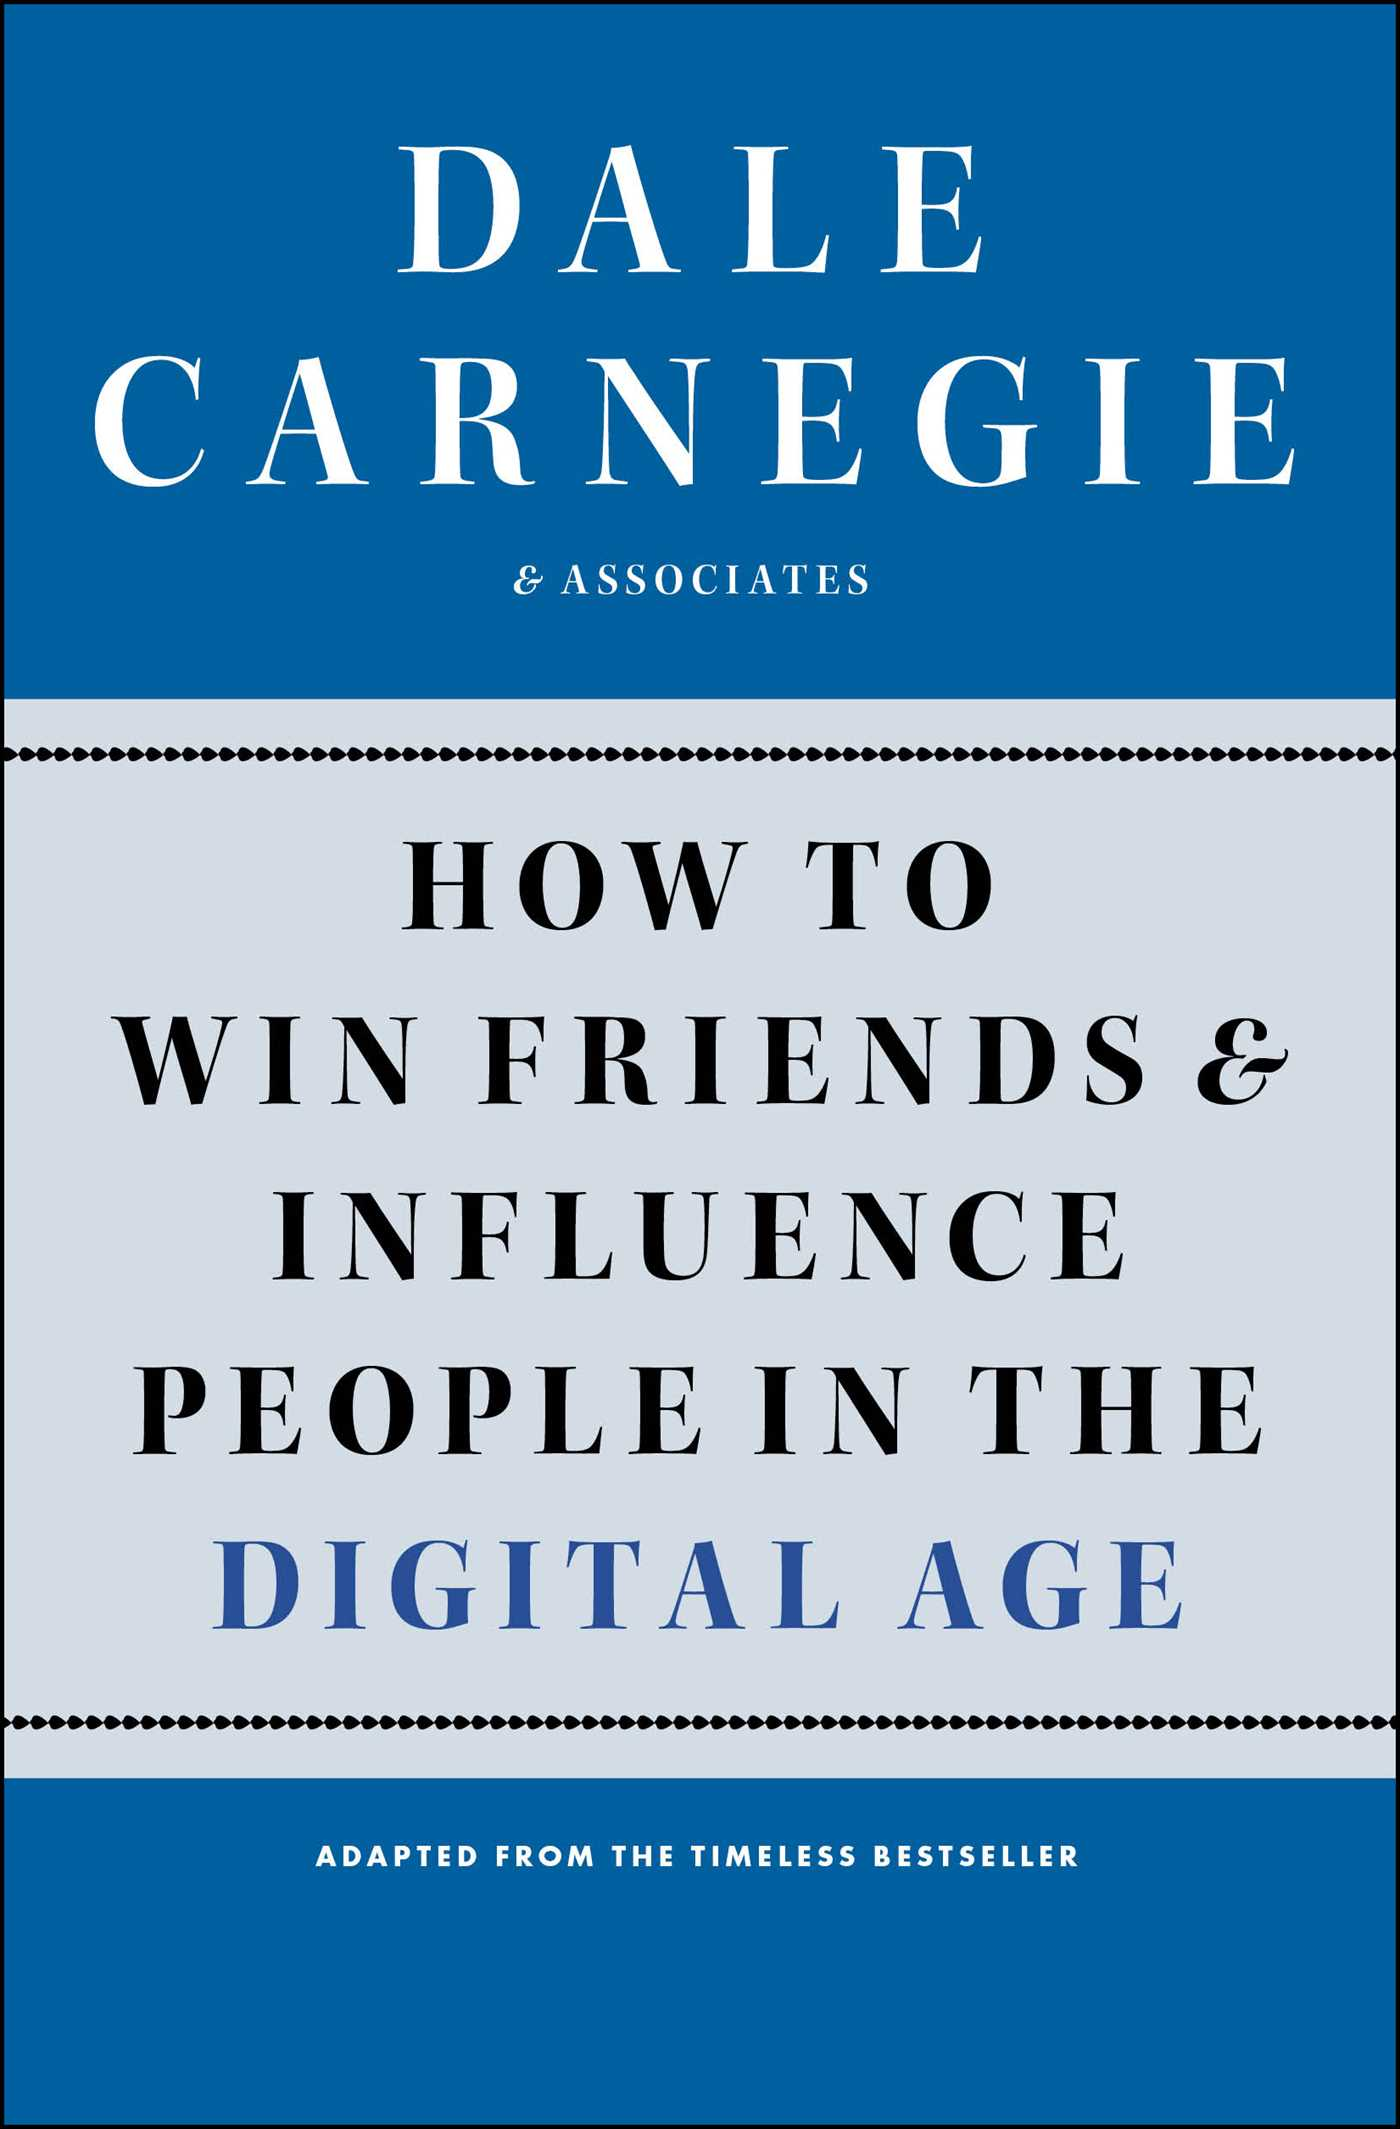 Download Ebook How to Win Friends and Influence People in the Digital Age by Dale Carnegie Pdf